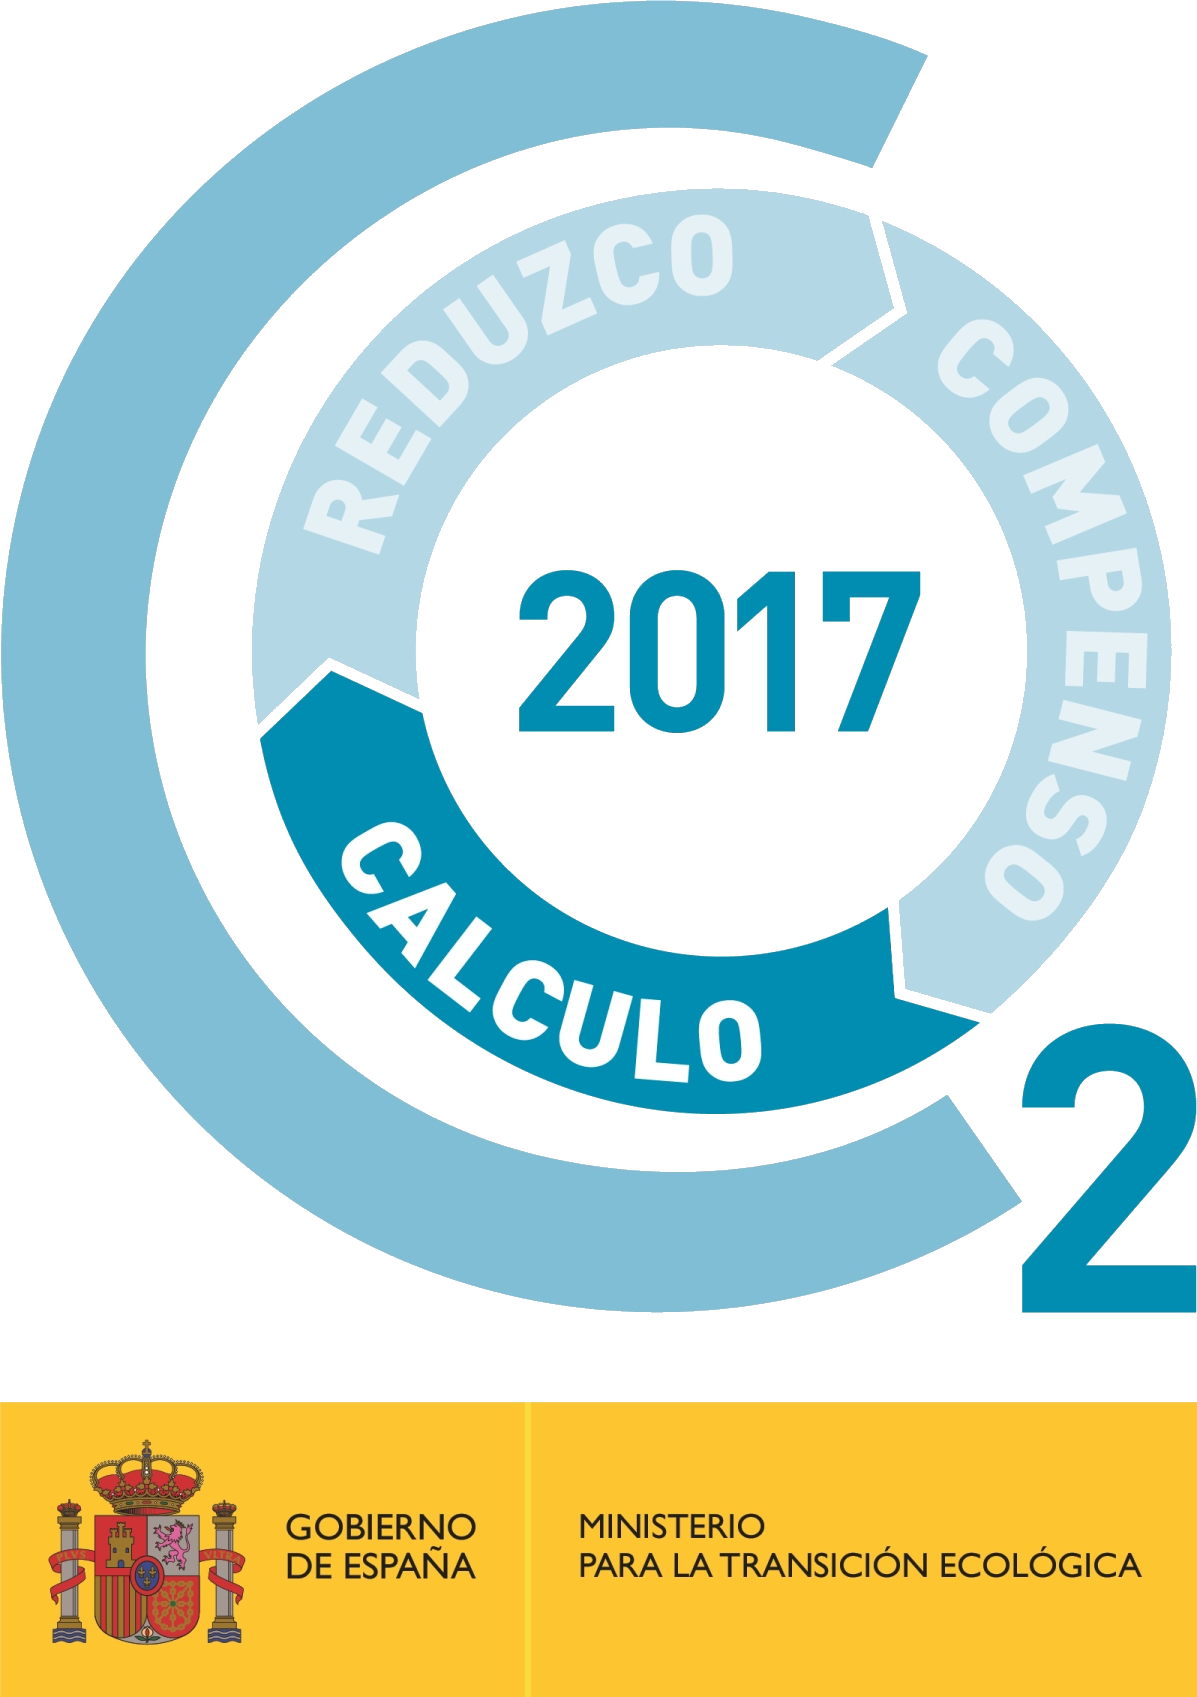 sello calculo 2017 ok